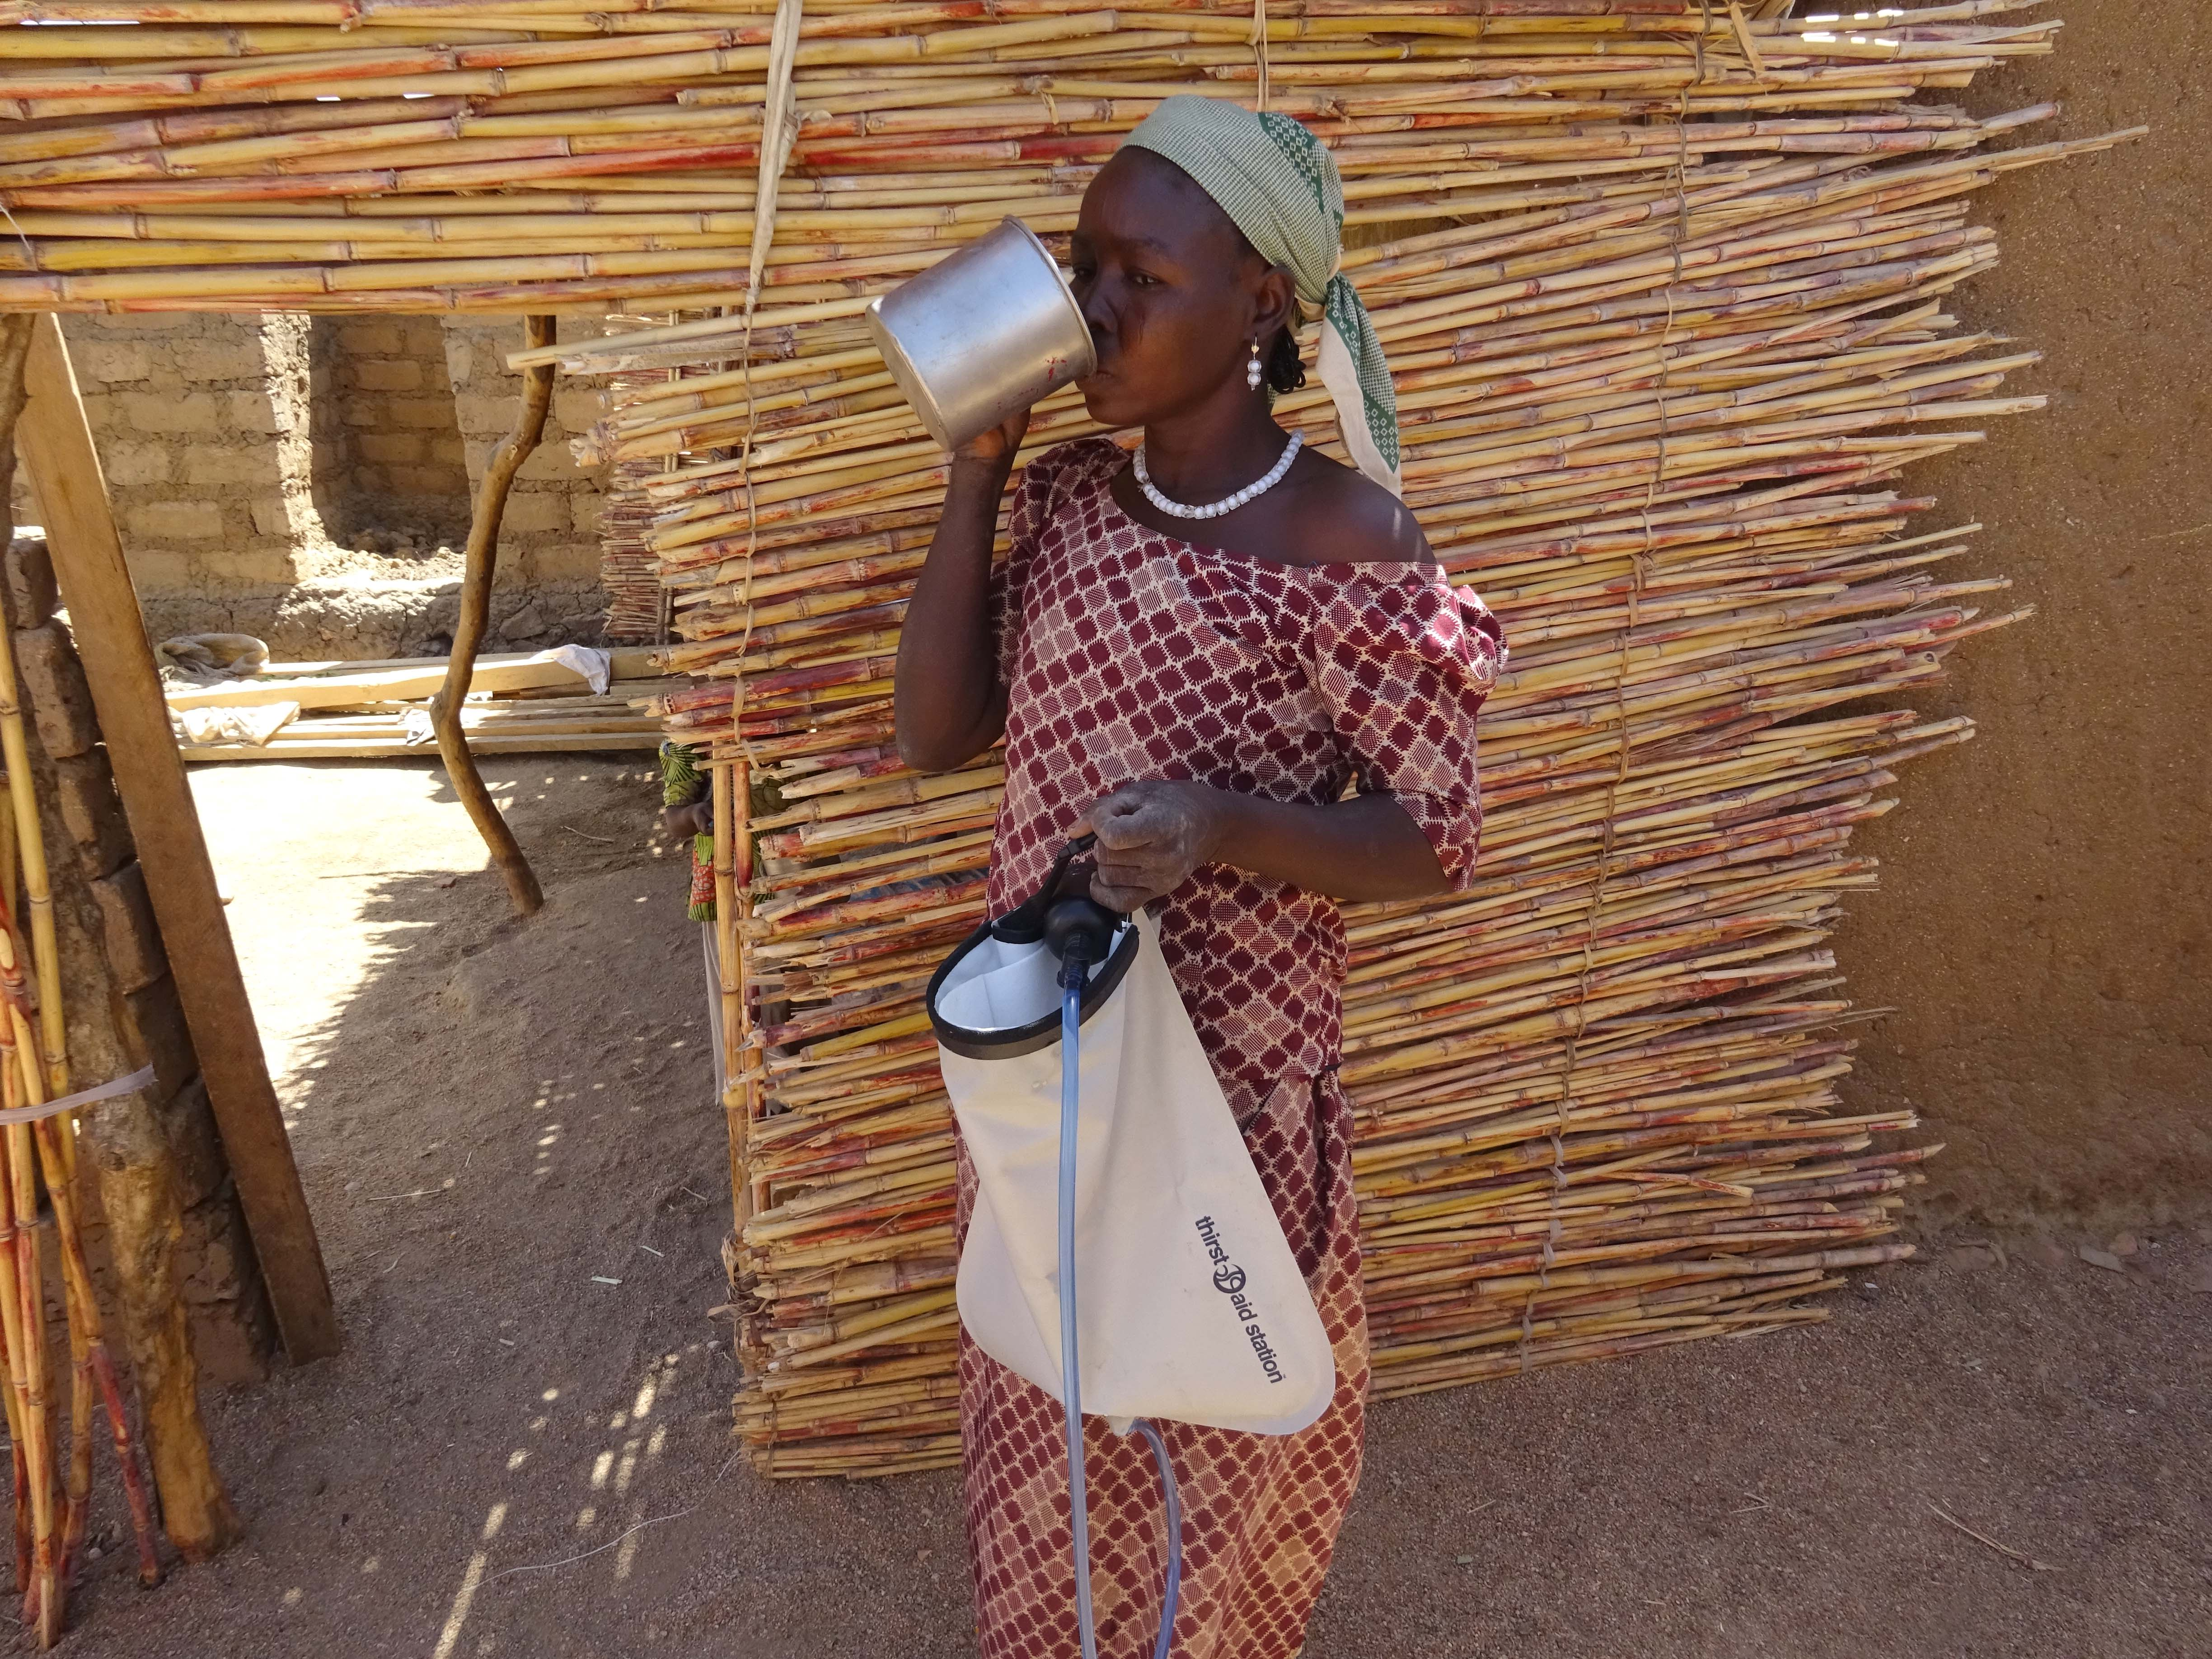 A woman drinks water out of a cup and holds a water filter